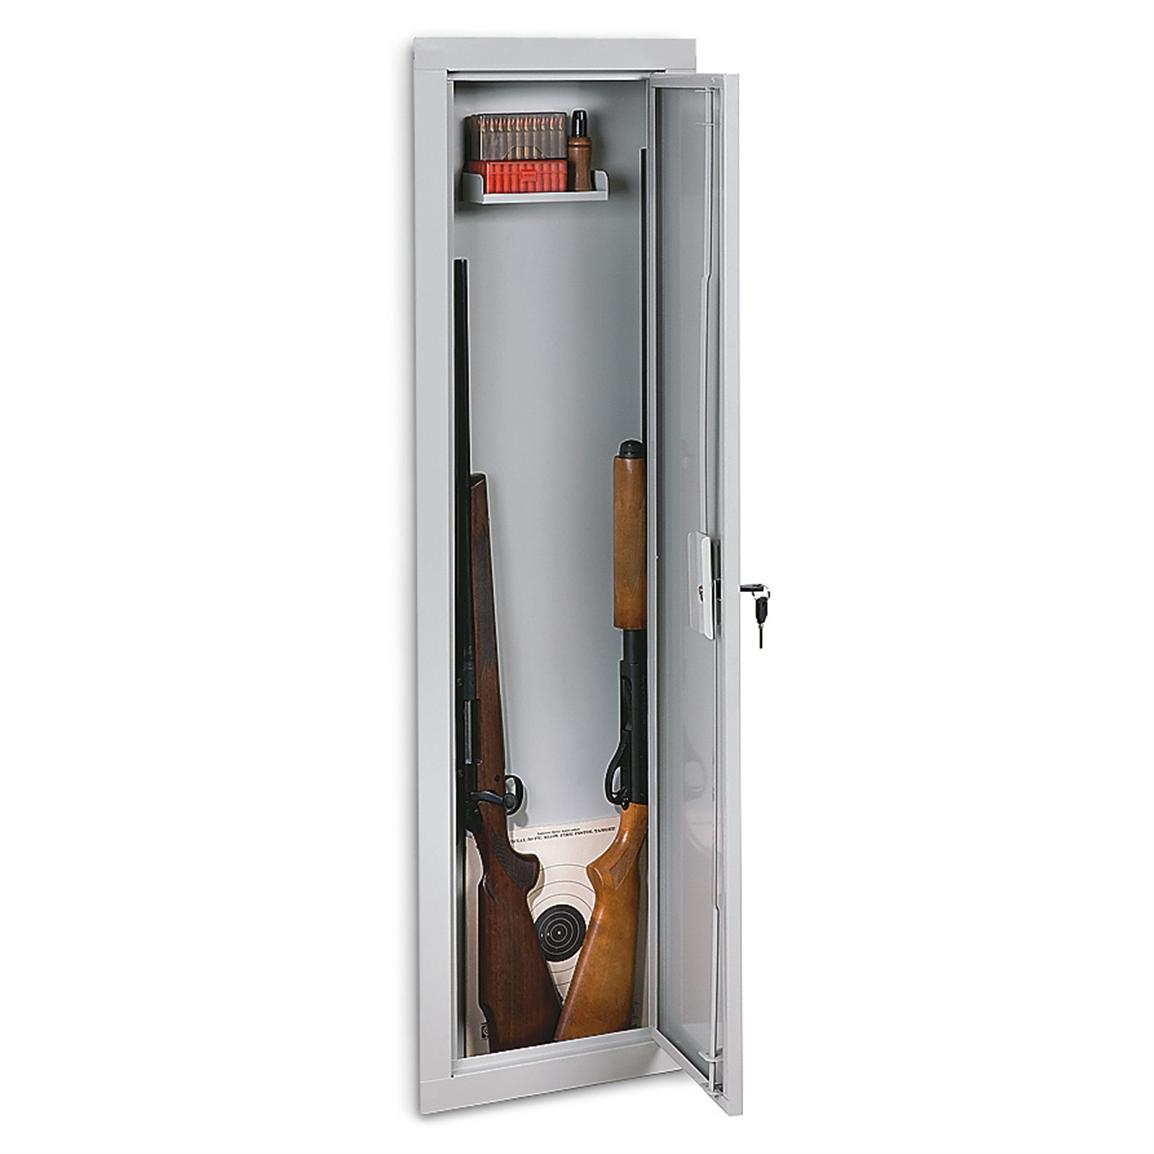 """Sentry Safe """"Home Defense Center"""" opinions, experience?-161400_ts.jpg"""